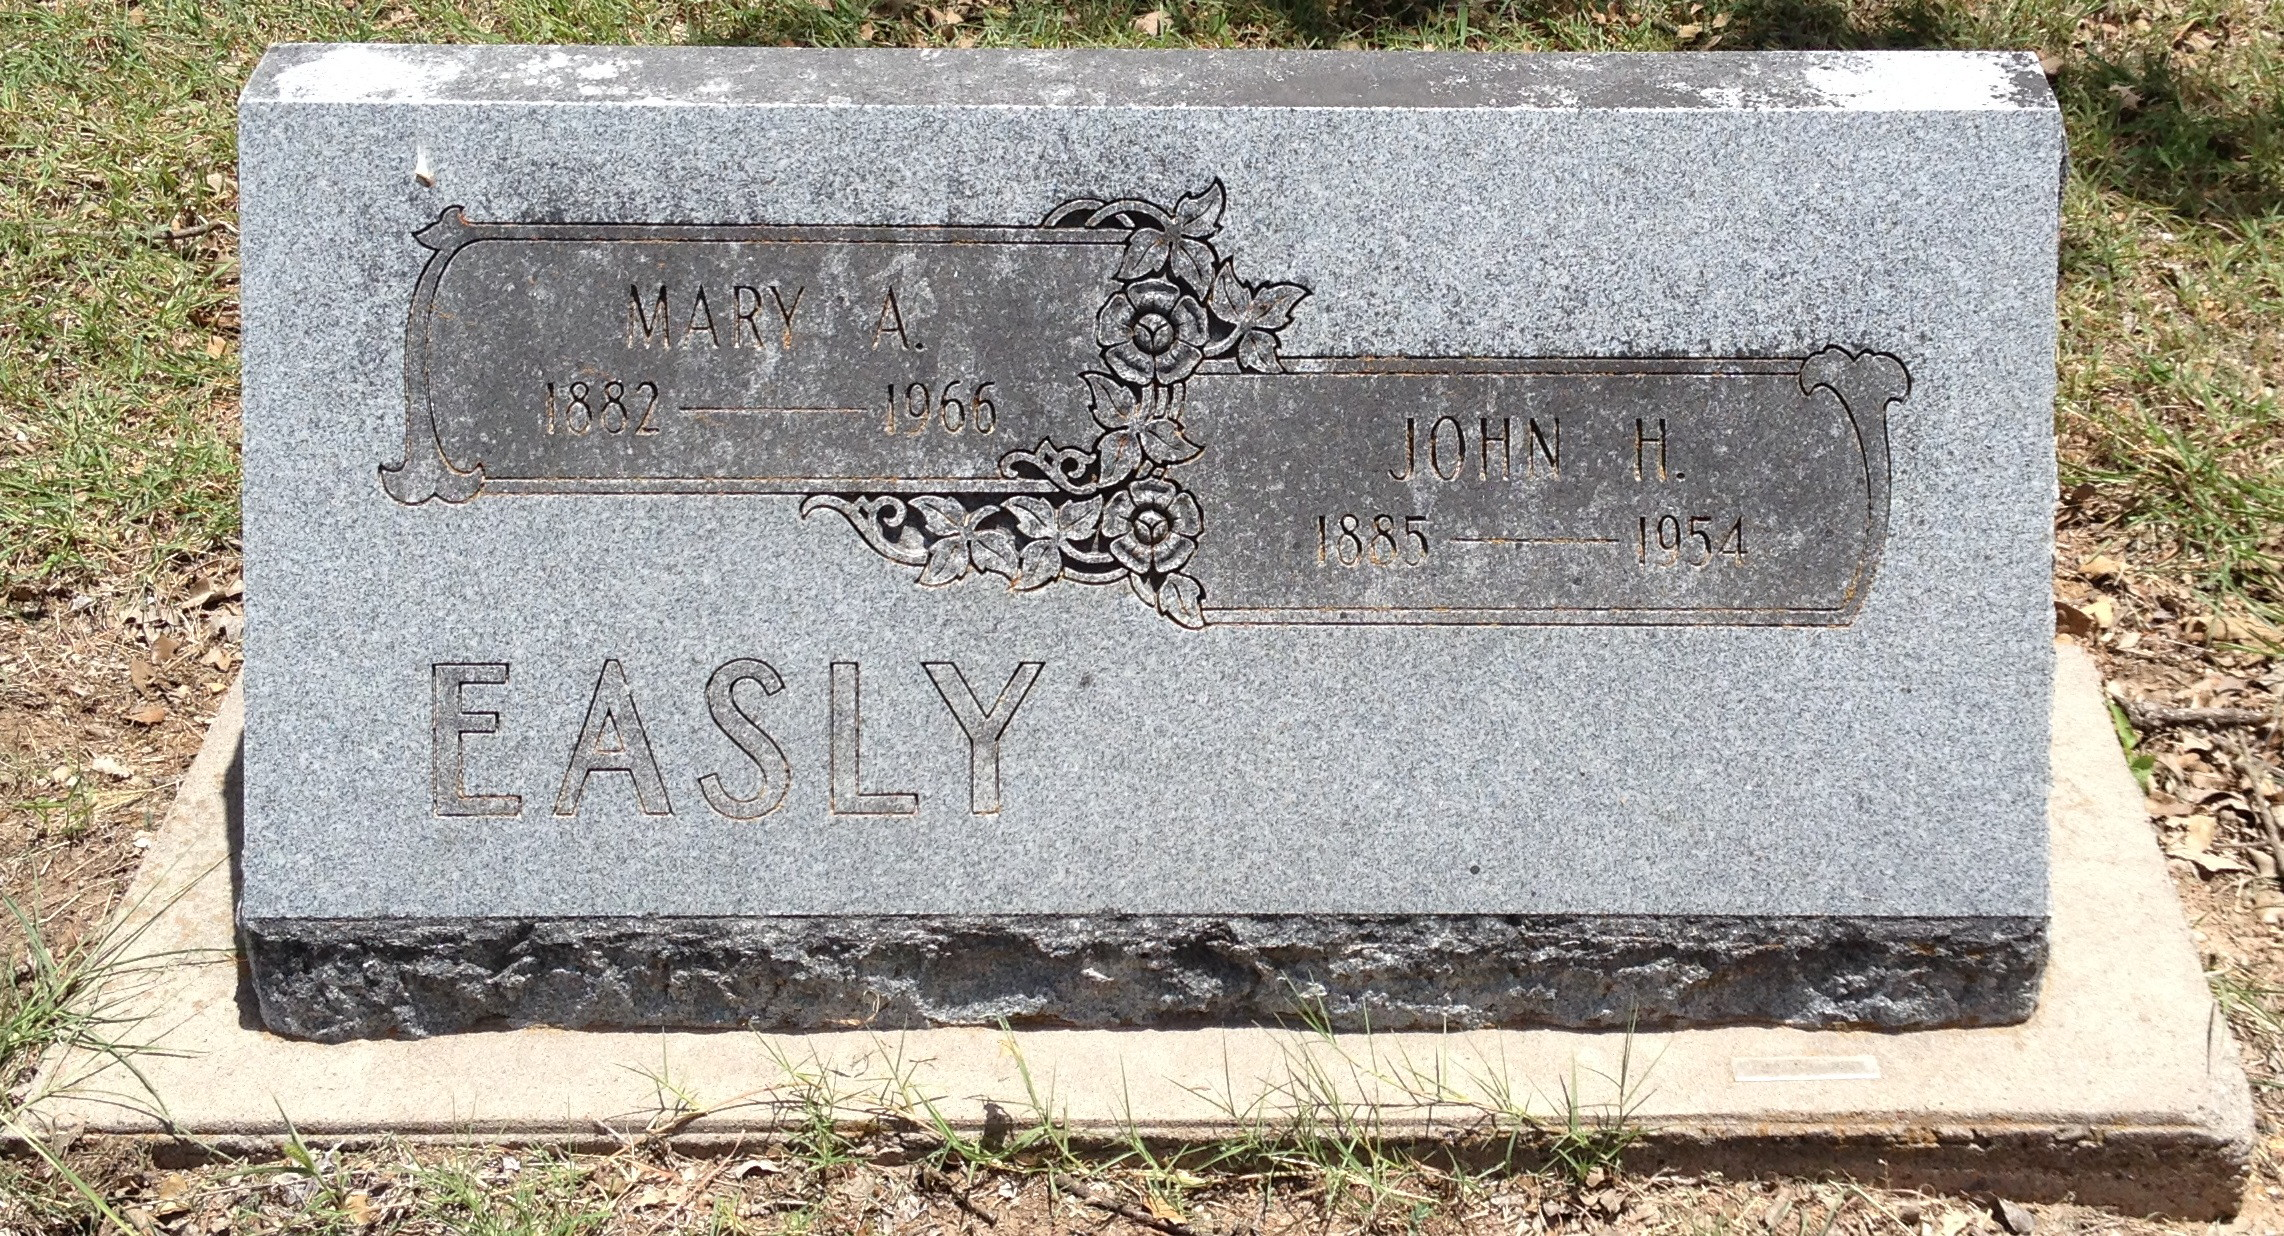 Dudley Howell Easley